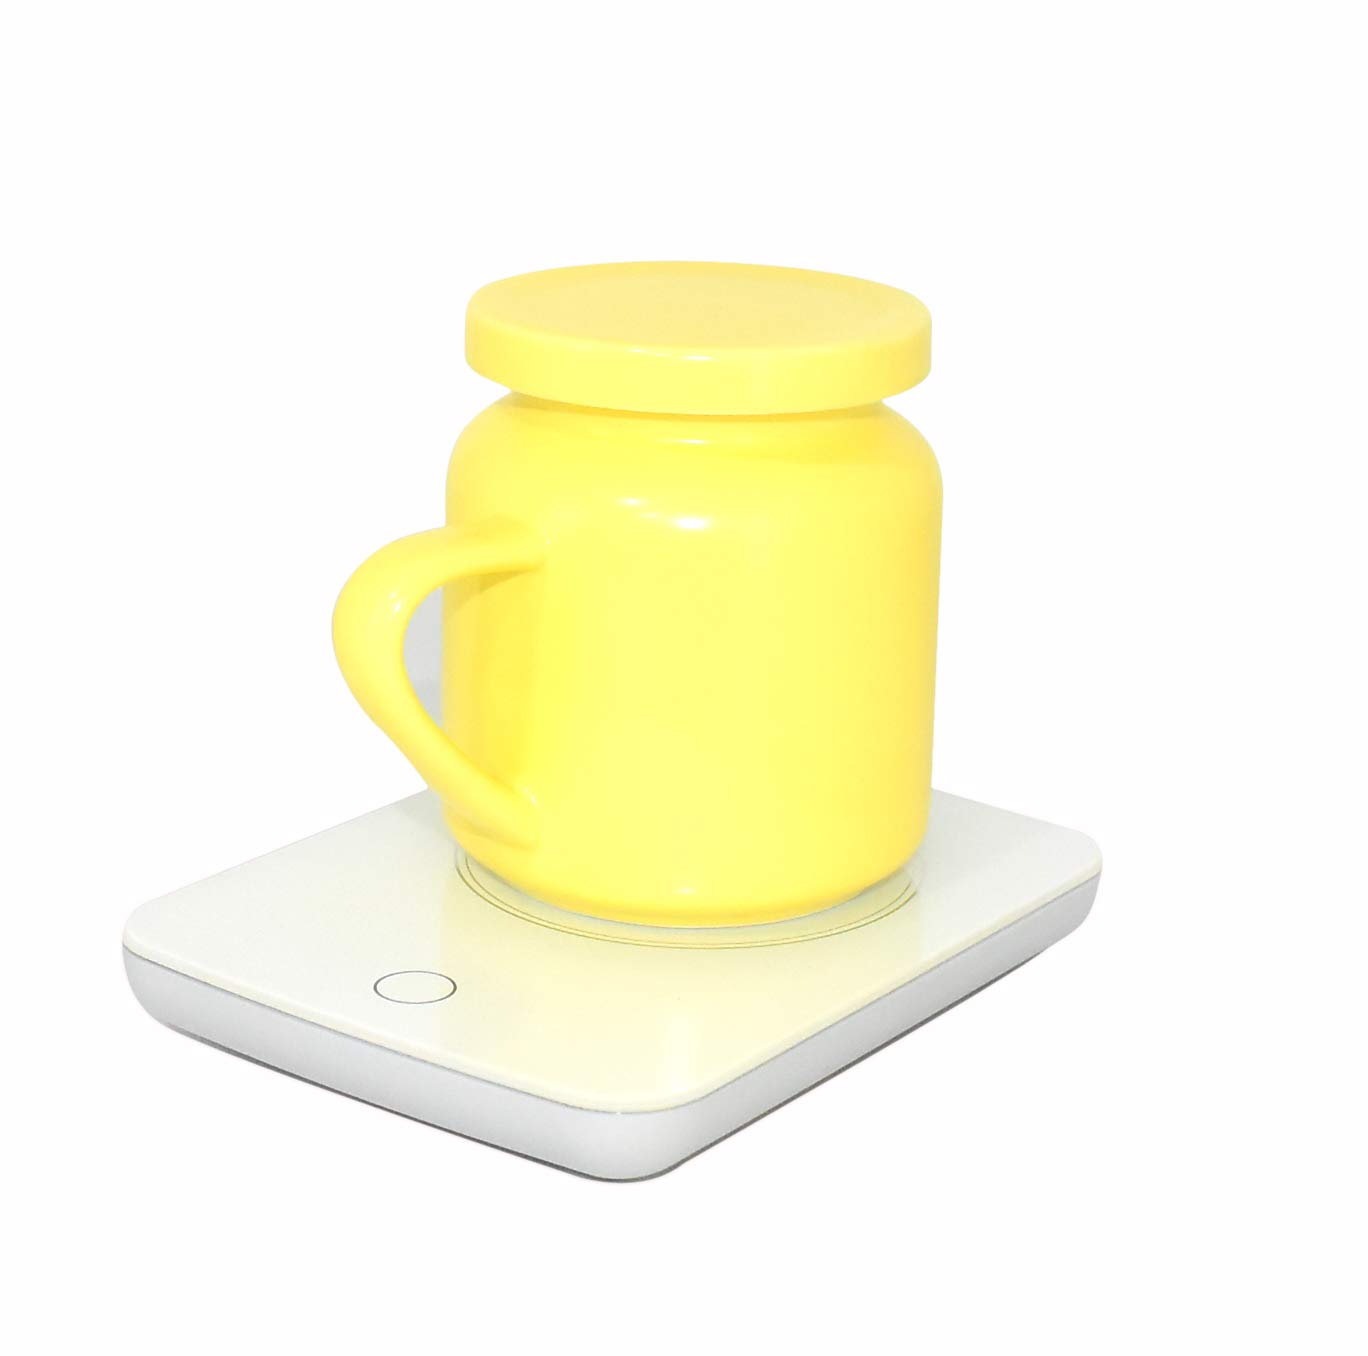 OKCafe Auto Shut Off Coffee Mug Warmer Electric Heat Cup Warmer for Milk Include Yellow Ceramic Mug for Office and Home Use 10.8 Ounce